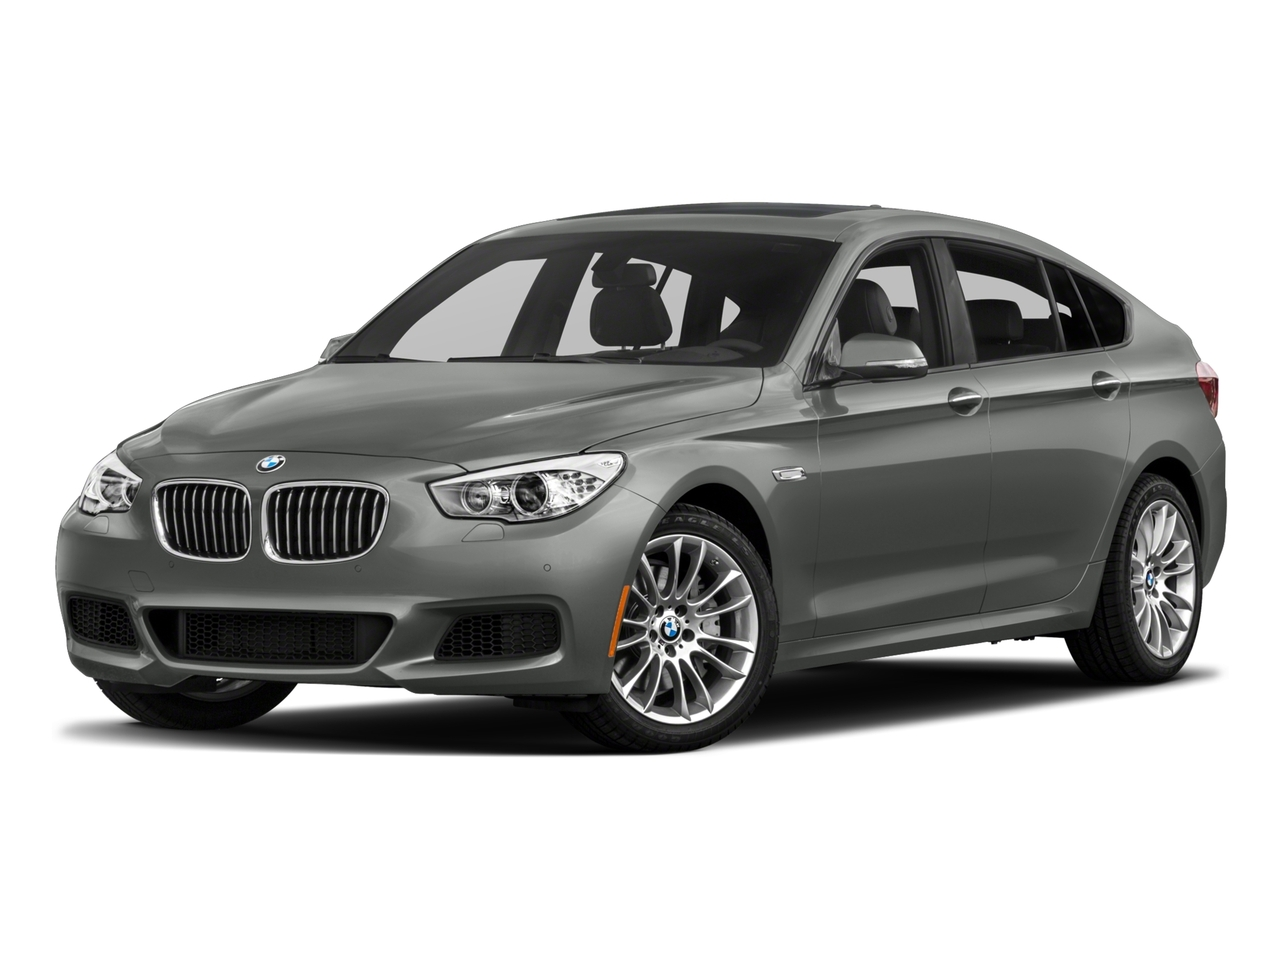 2017 BMW 5 Series - Bowling Green, KY